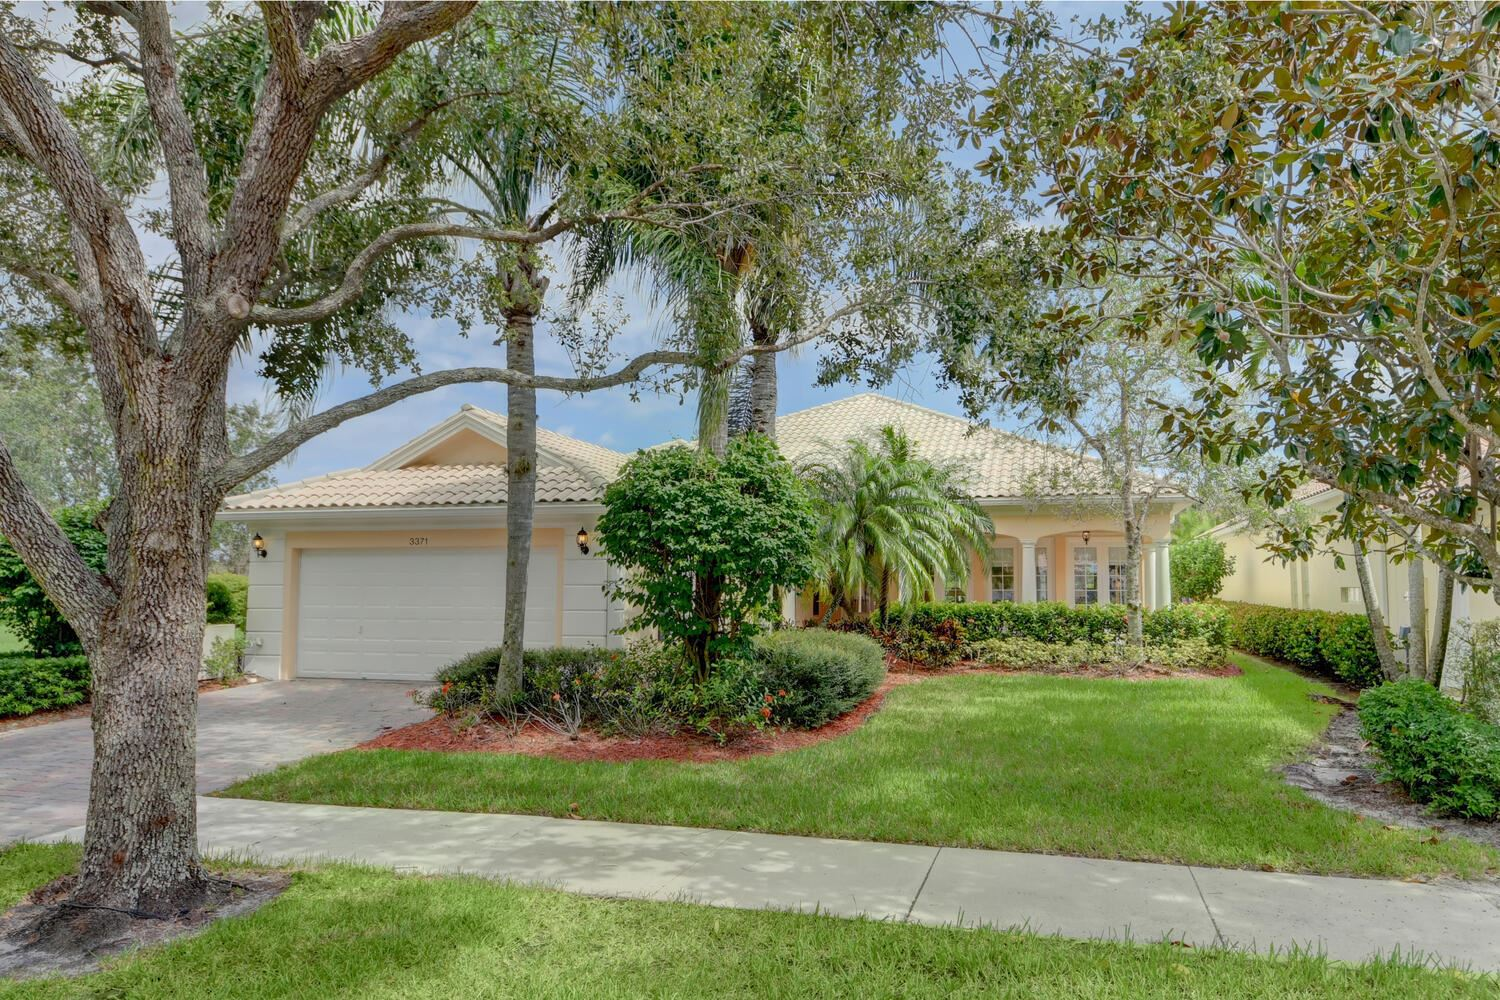 3371 SE Cascadia Way, Hobe Sound, FL 33455 - #: RX-10654568